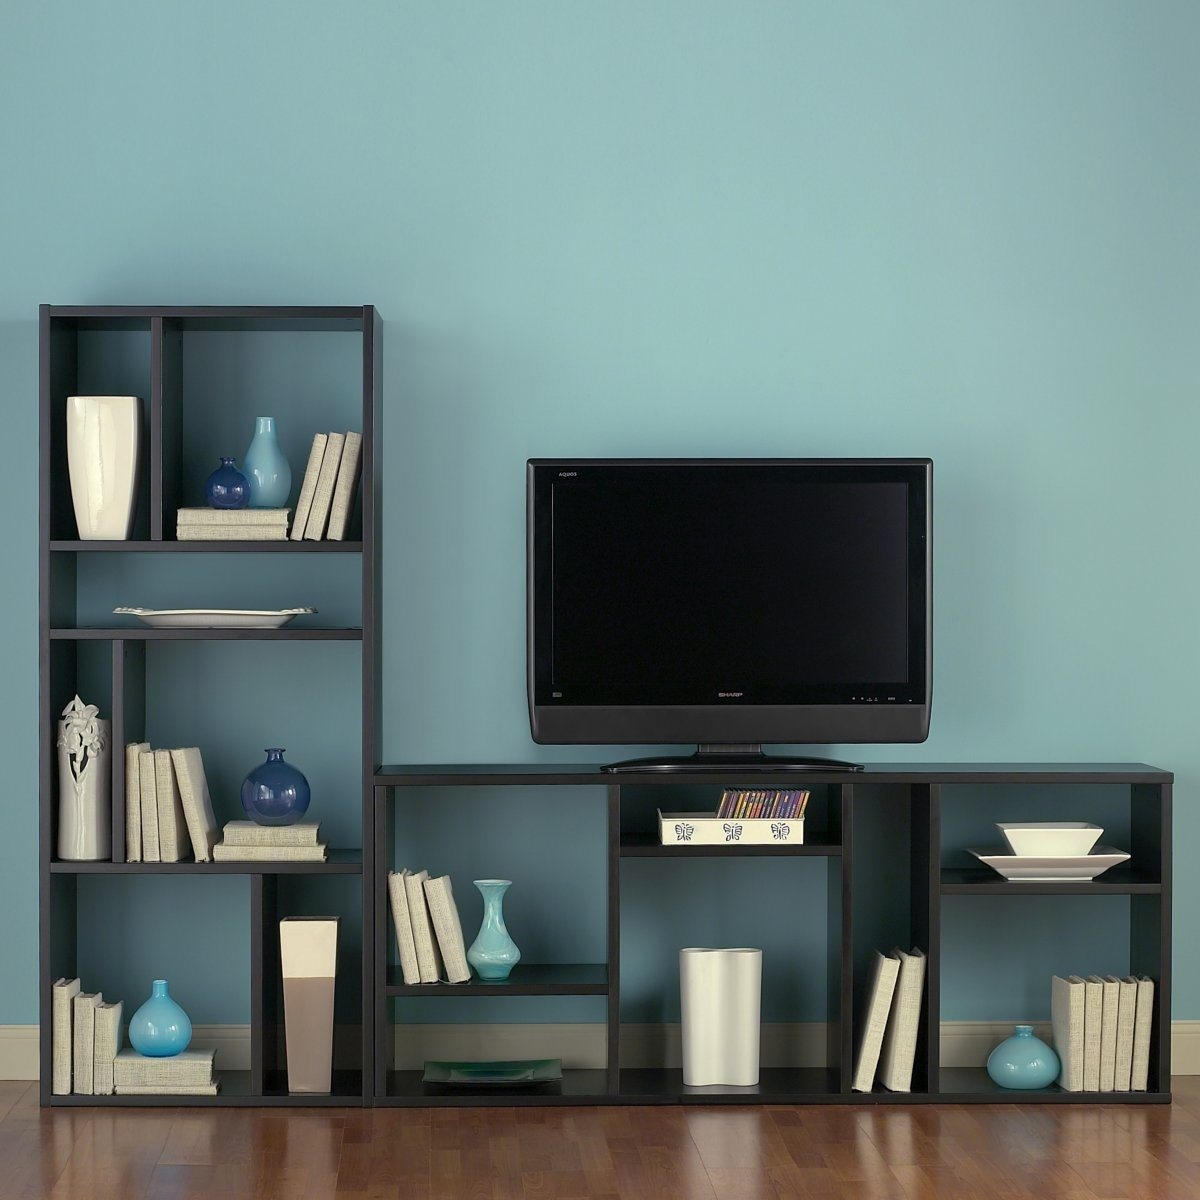 Tv Stands Inspire Black And White Tv Stand Bookshelf Design Ideas With Regard To Tv Book Shelf (#14 of 15)